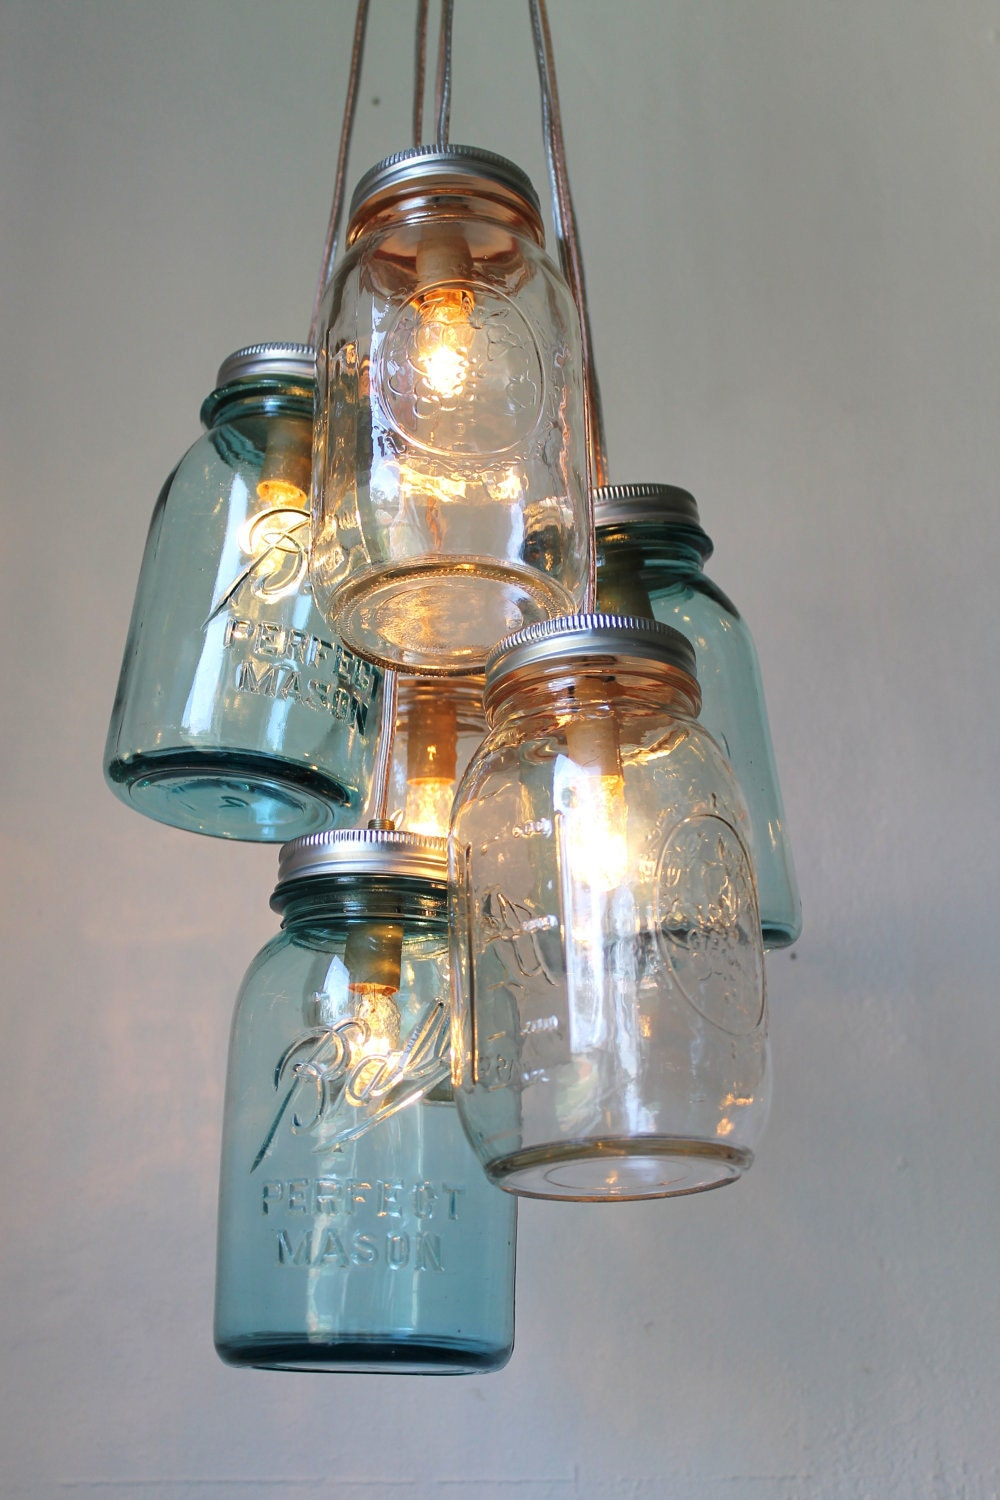 mason jar chandelier handcrafted rustic hanging lighting. Black Bedroom Furniture Sets. Home Design Ideas